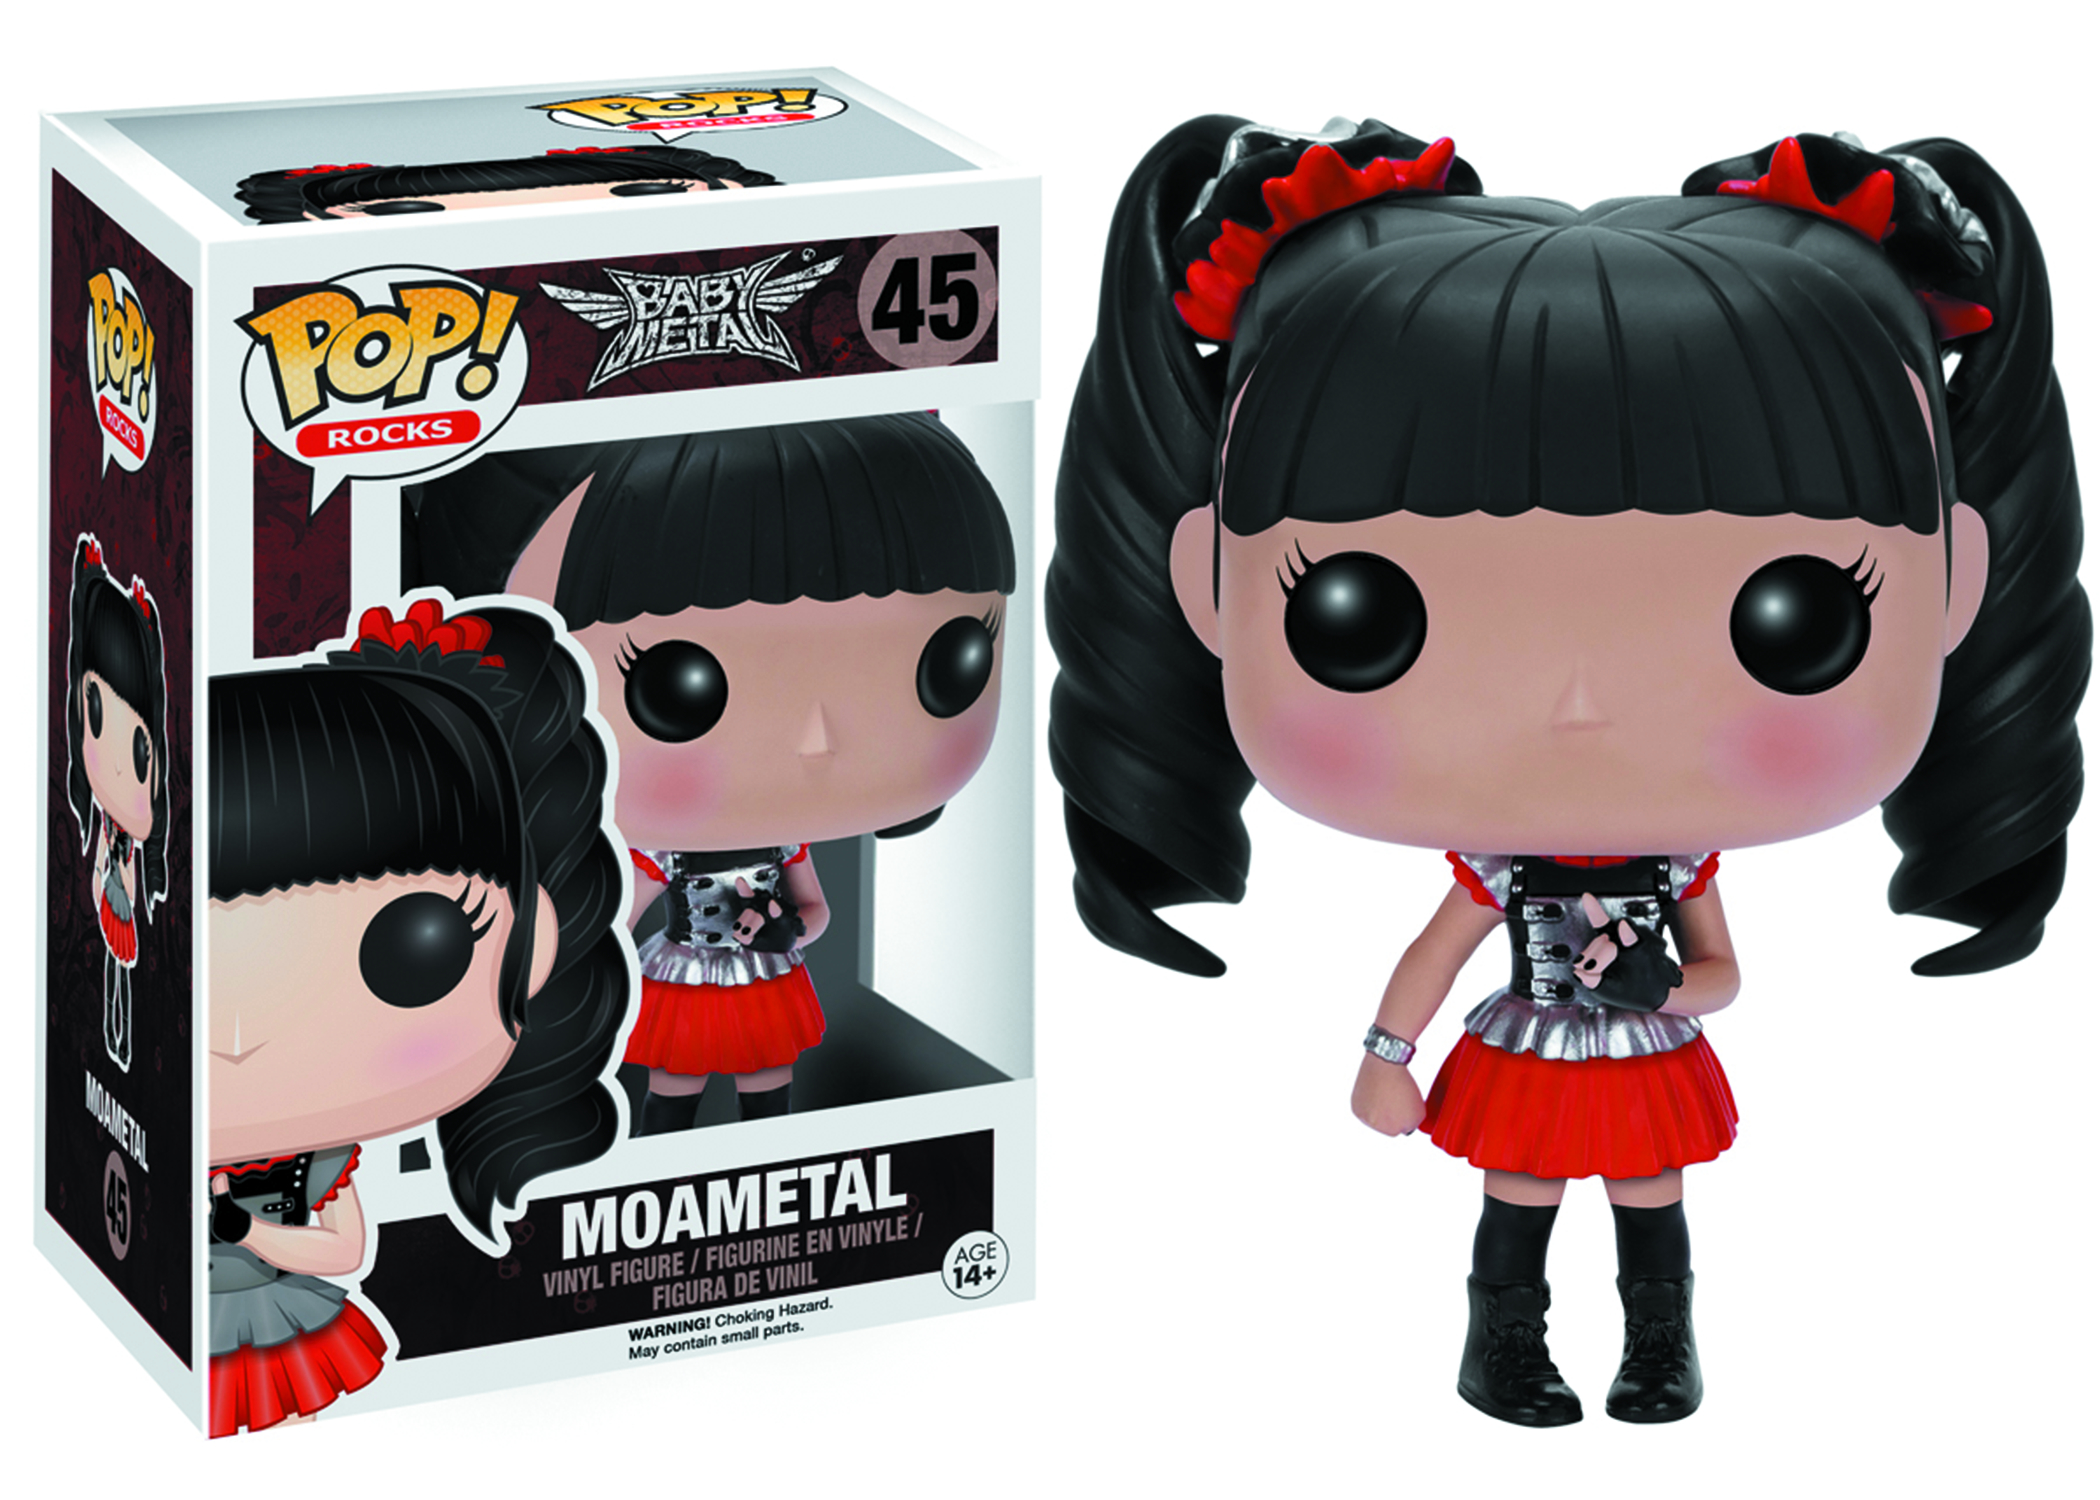 POP BABYMETAL MOAMETAL VINYL FIG